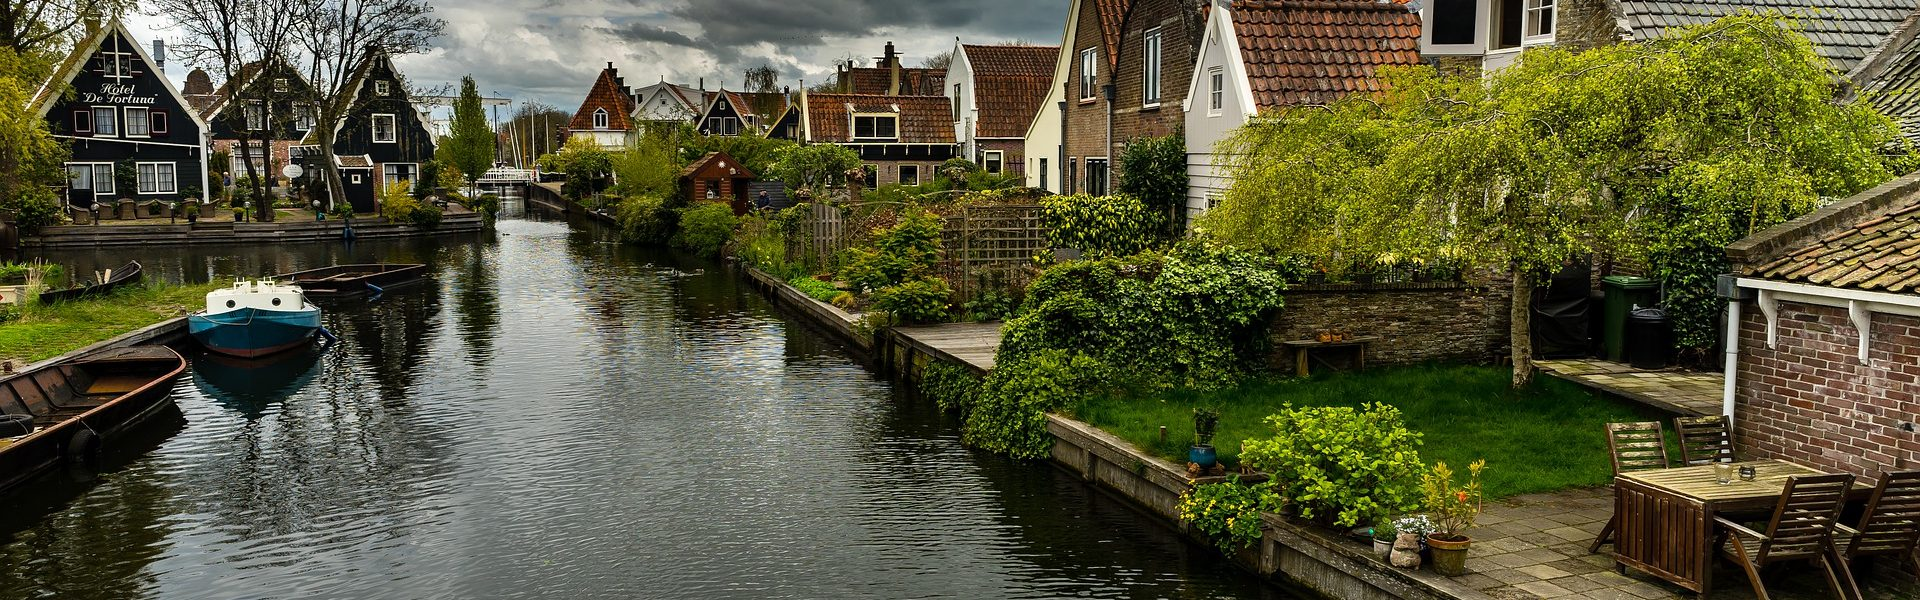 canals-4845467_1920